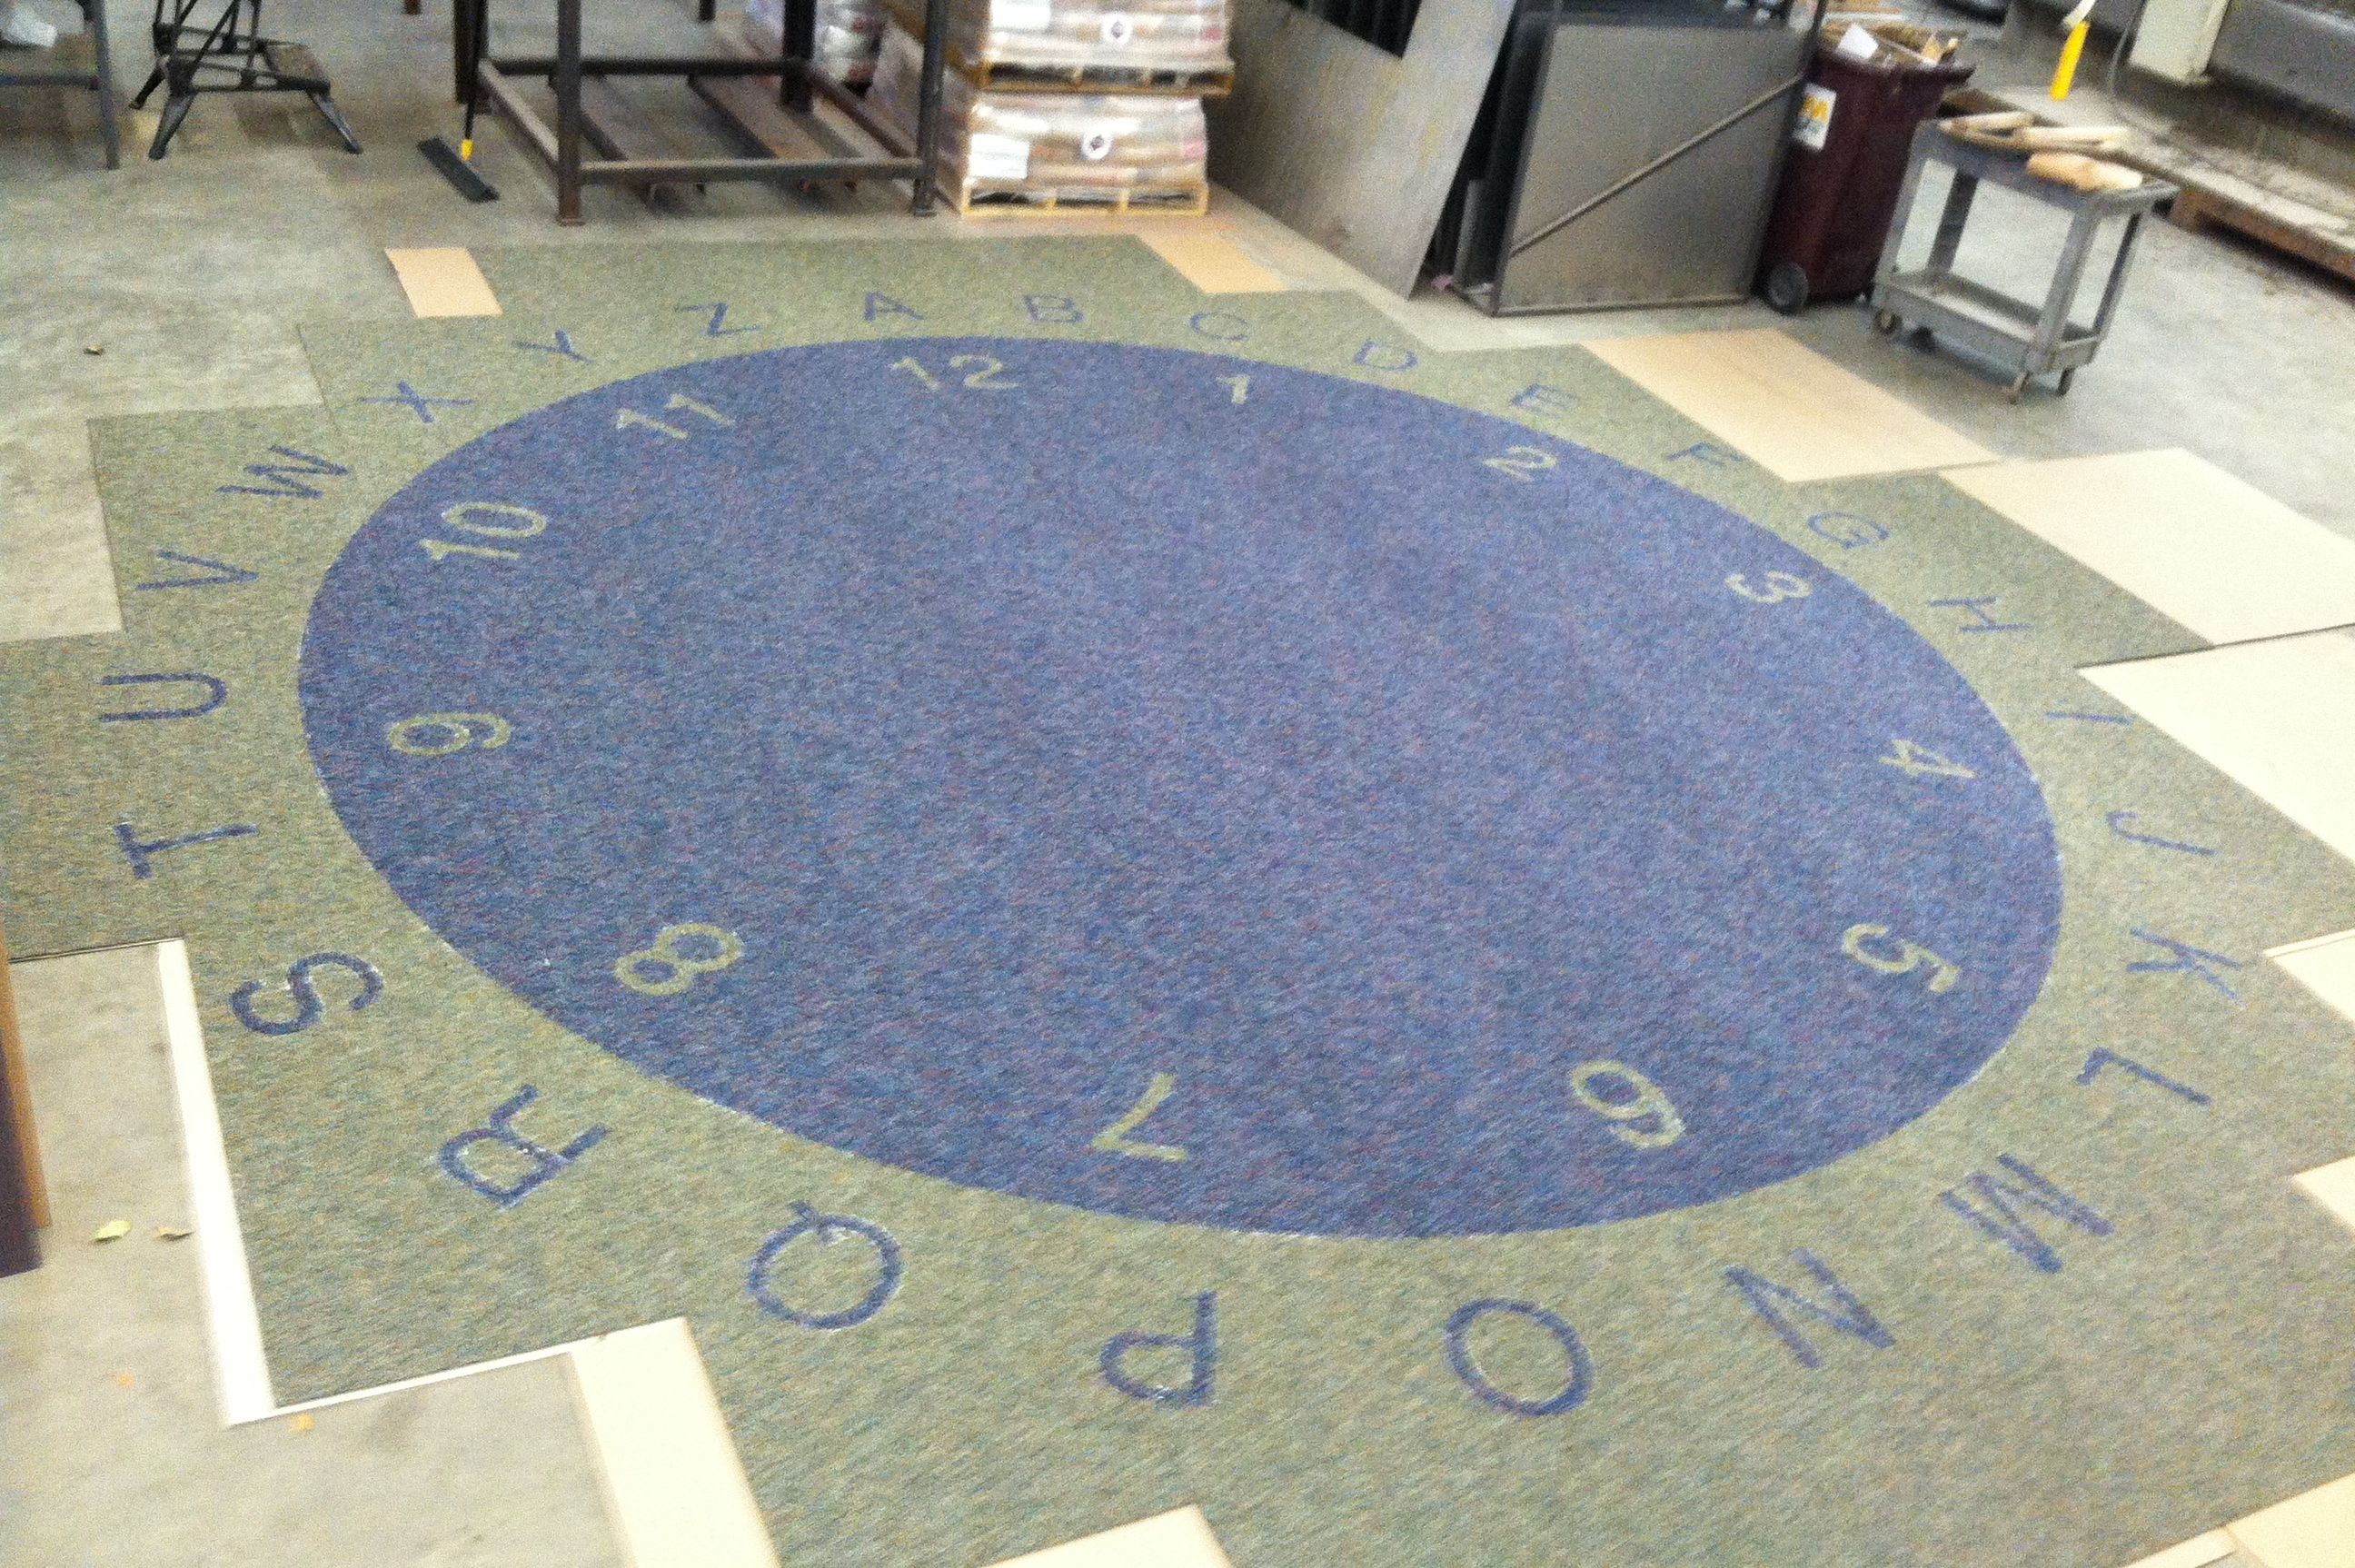 Carpet for an elementary school